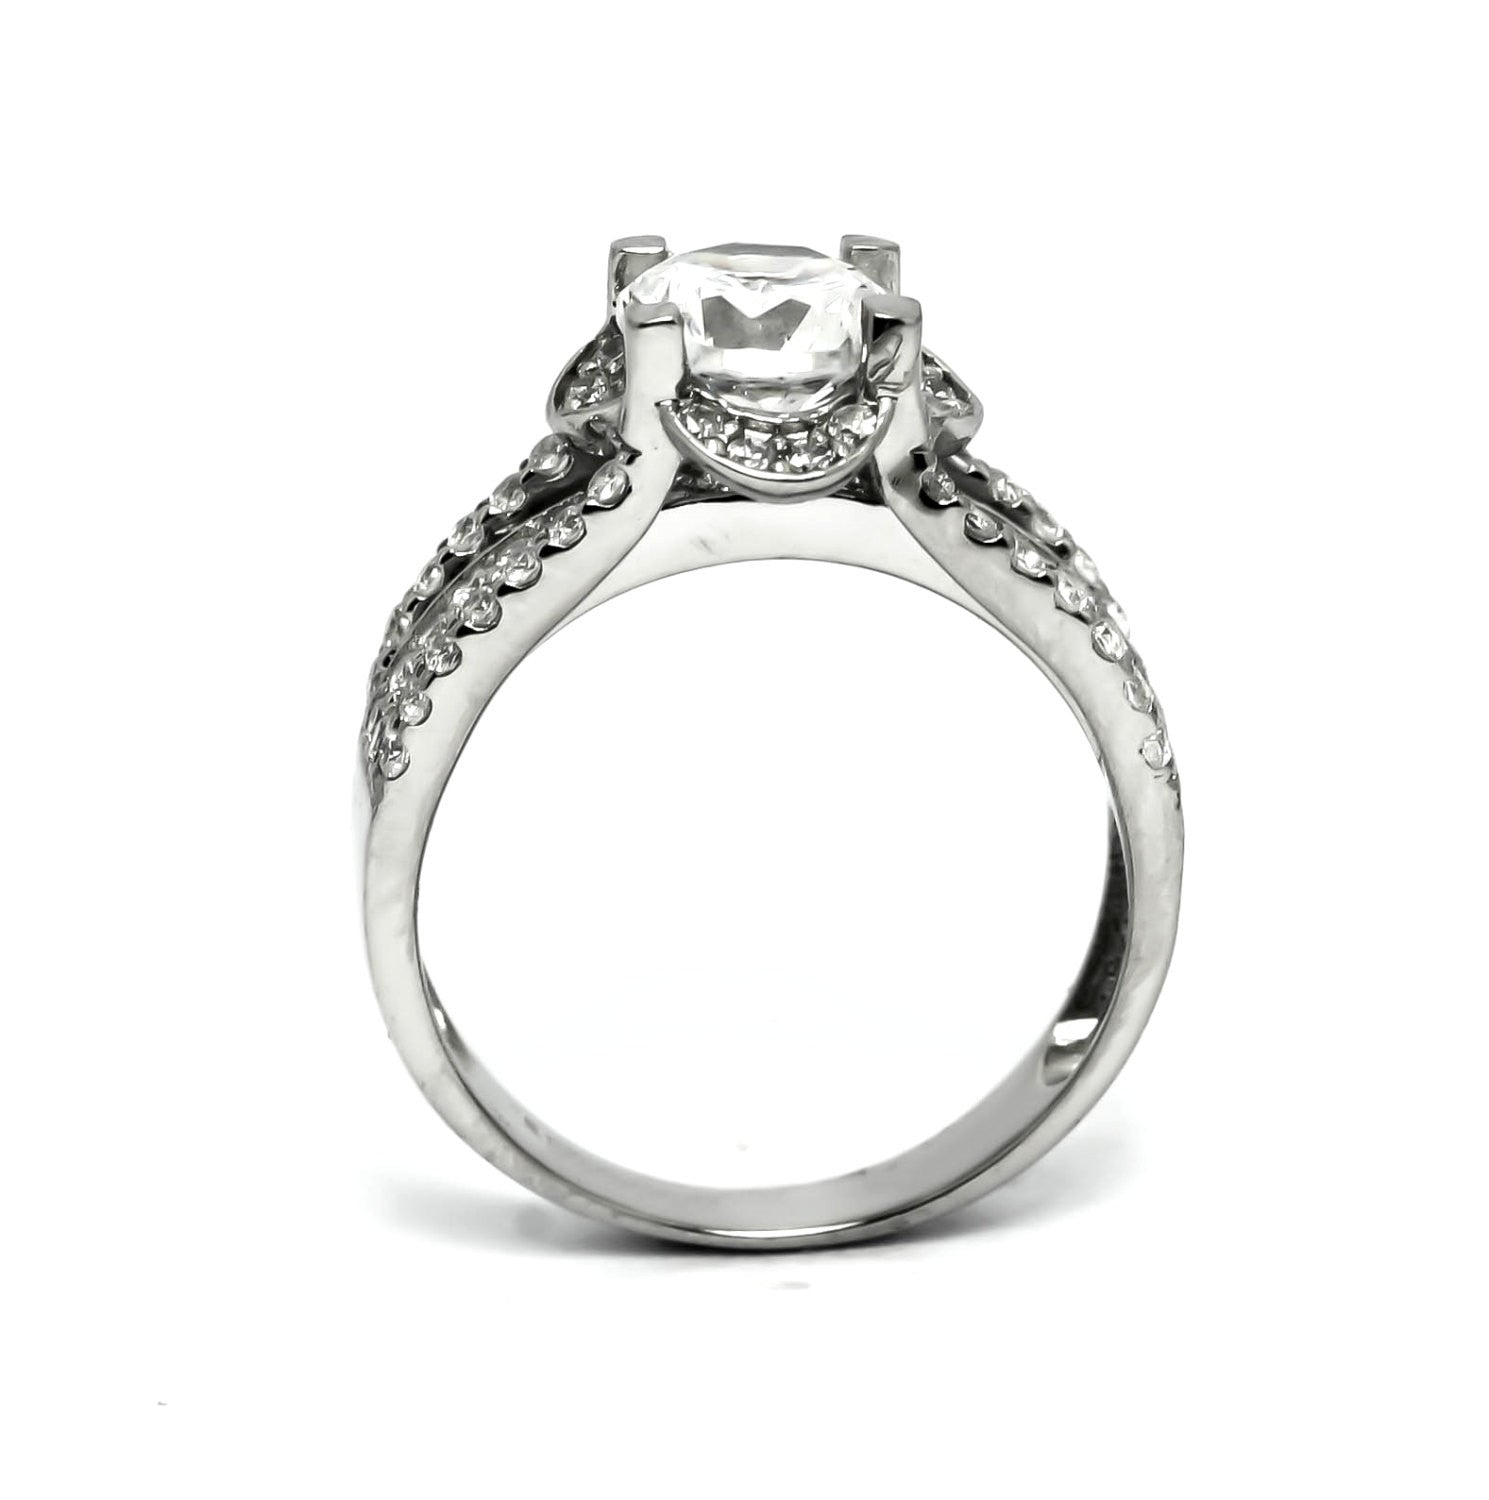 Moissanite Engagement Ring, Unique Halo 4 Line Shank With .70 Carat Diamond & 1.25 Carat Forever Brilliant Moissanite Center Stone - FBY11579